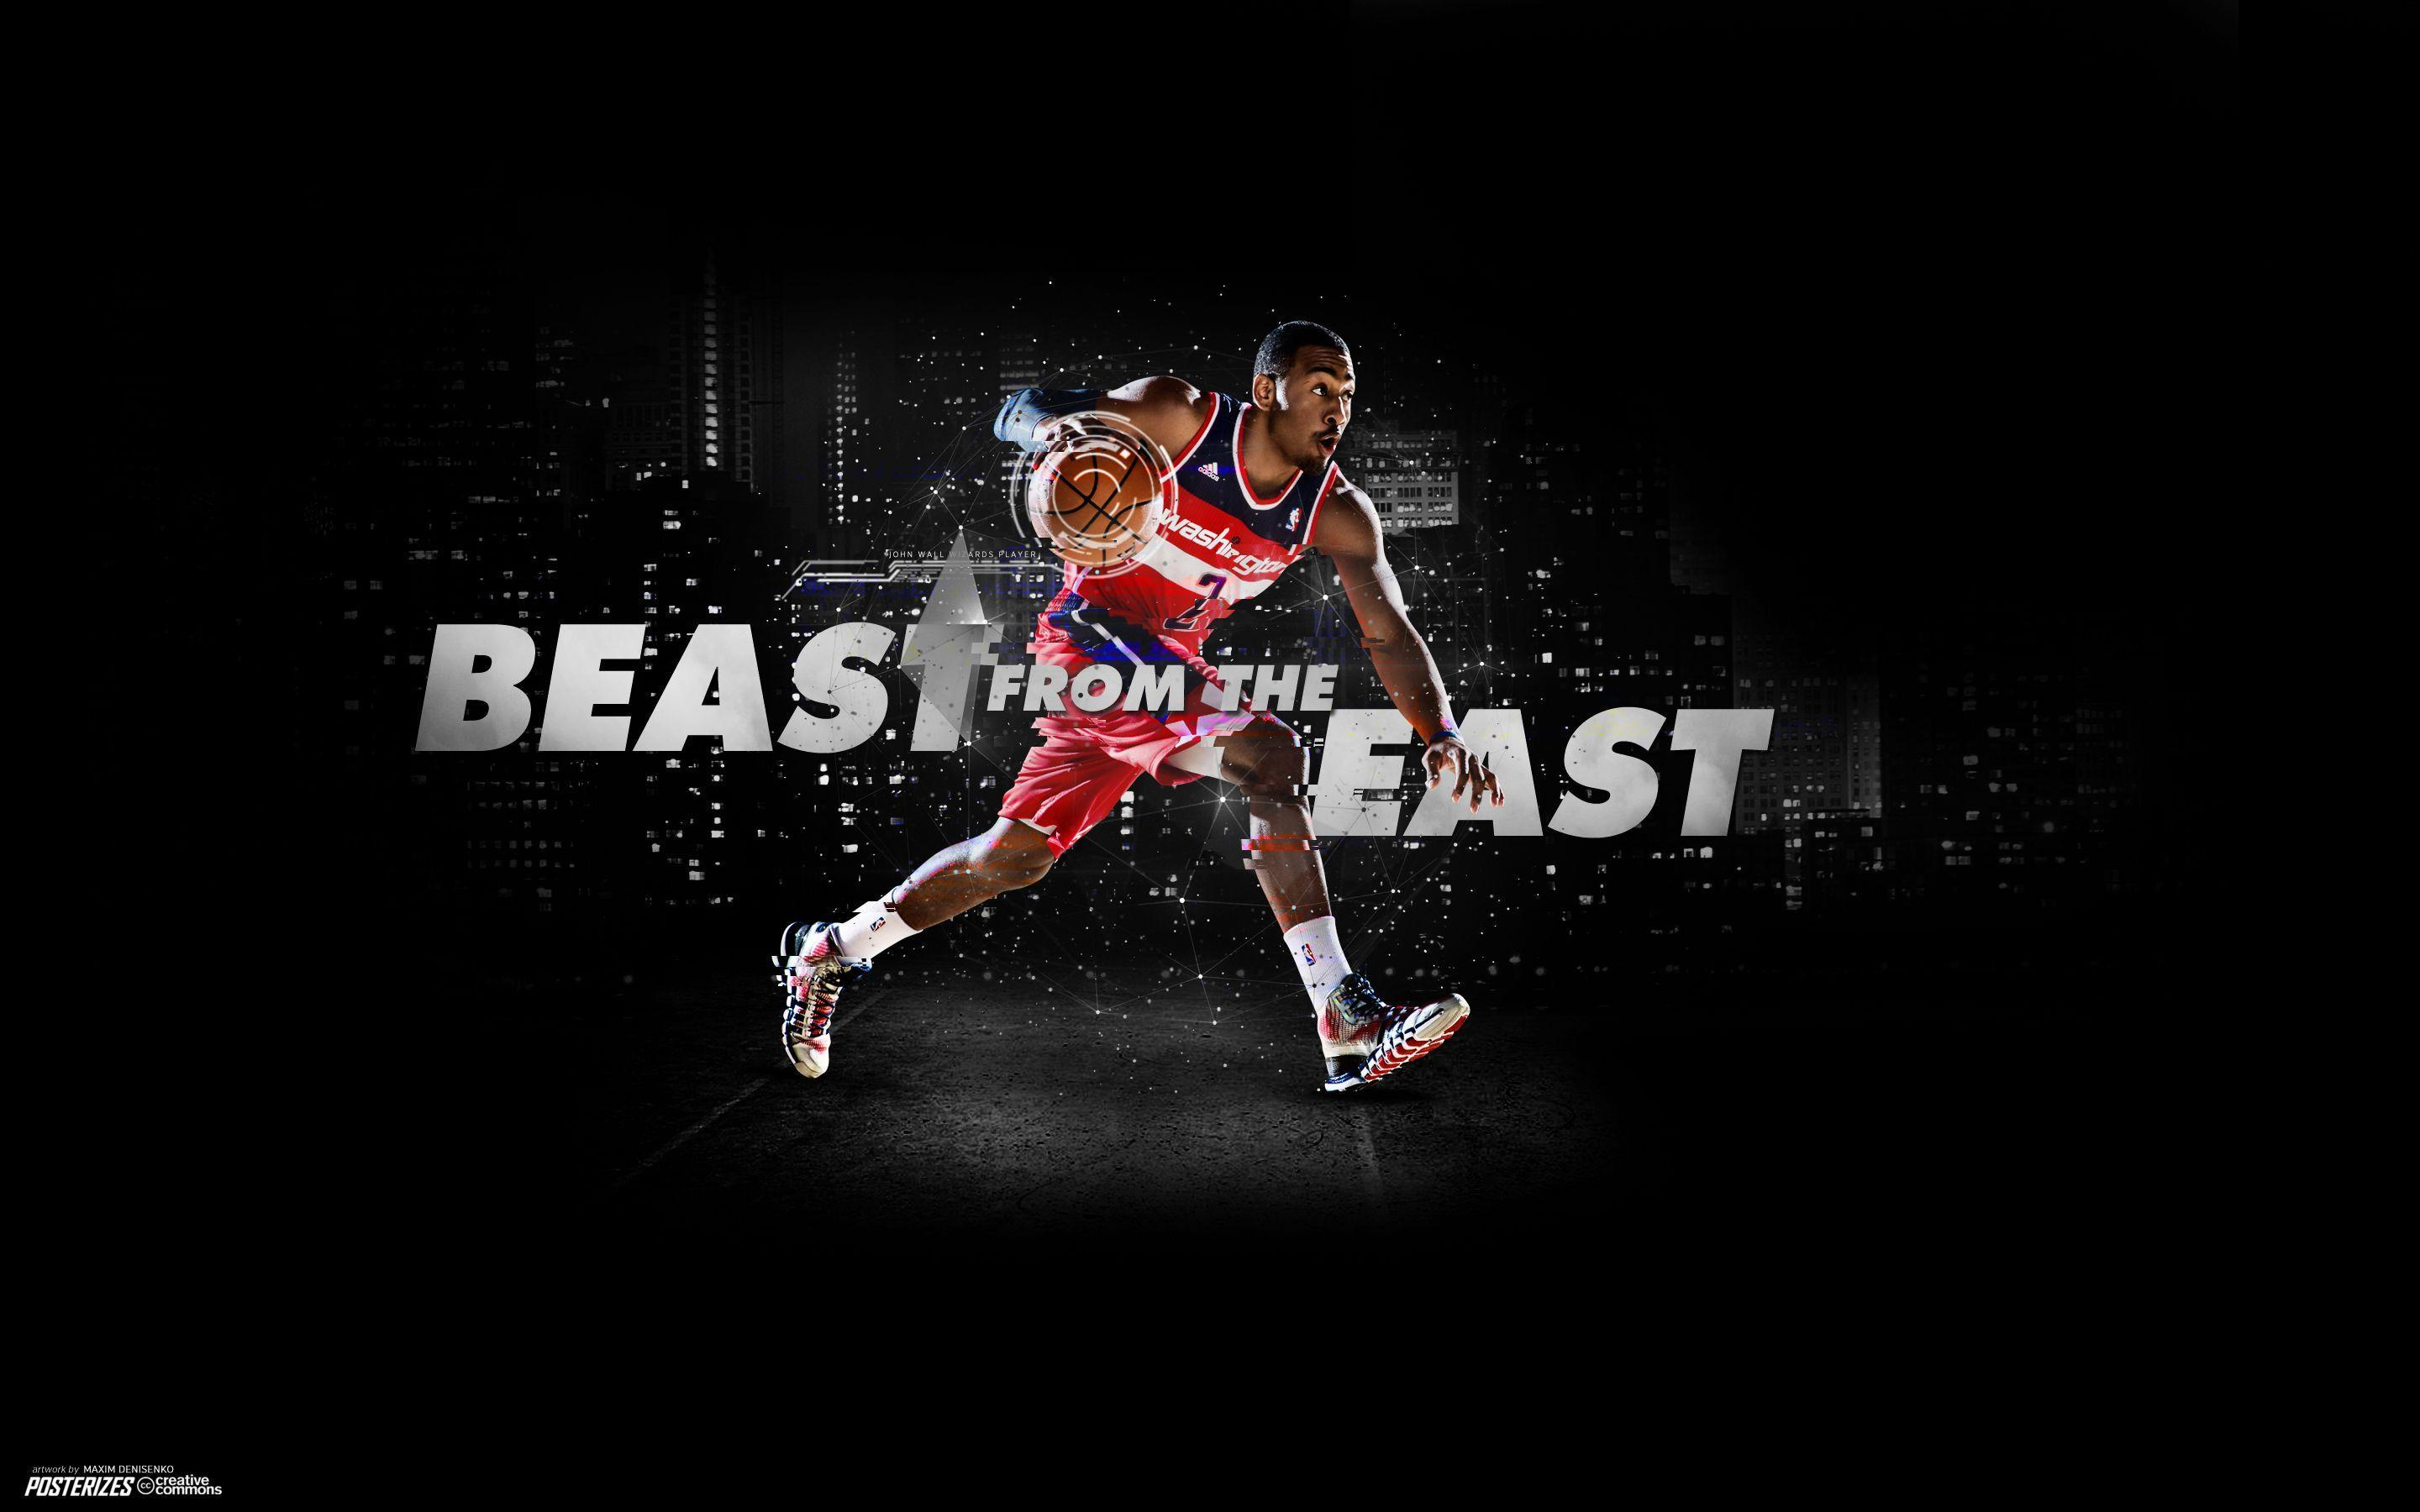 John Wall Wallpapers HD | Pixels Talk